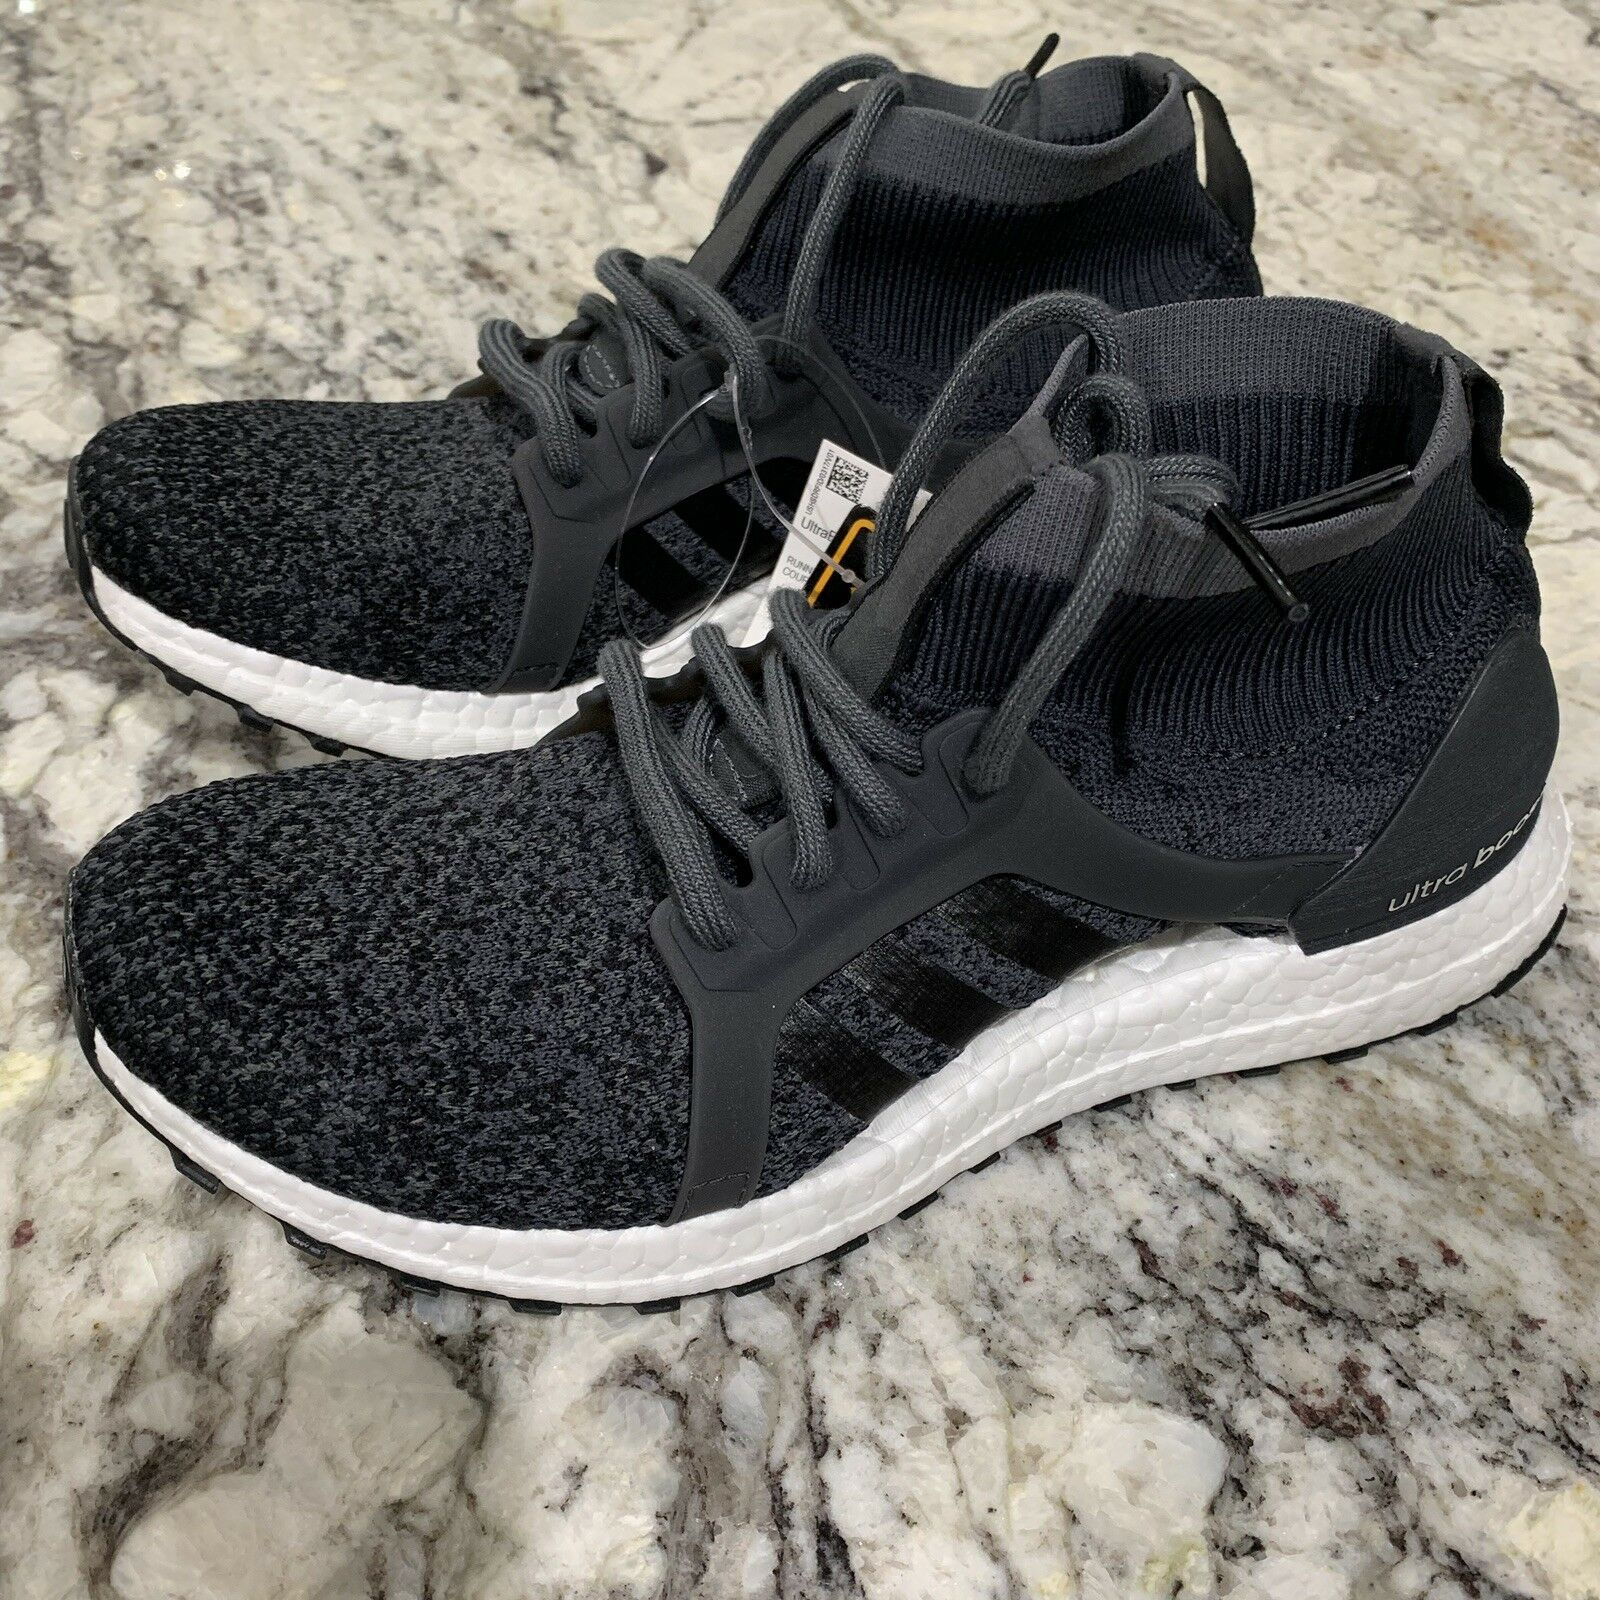 Adidas Women's Ultra Boost X All Terrain Size 7 Running shoes Carbon BY8925